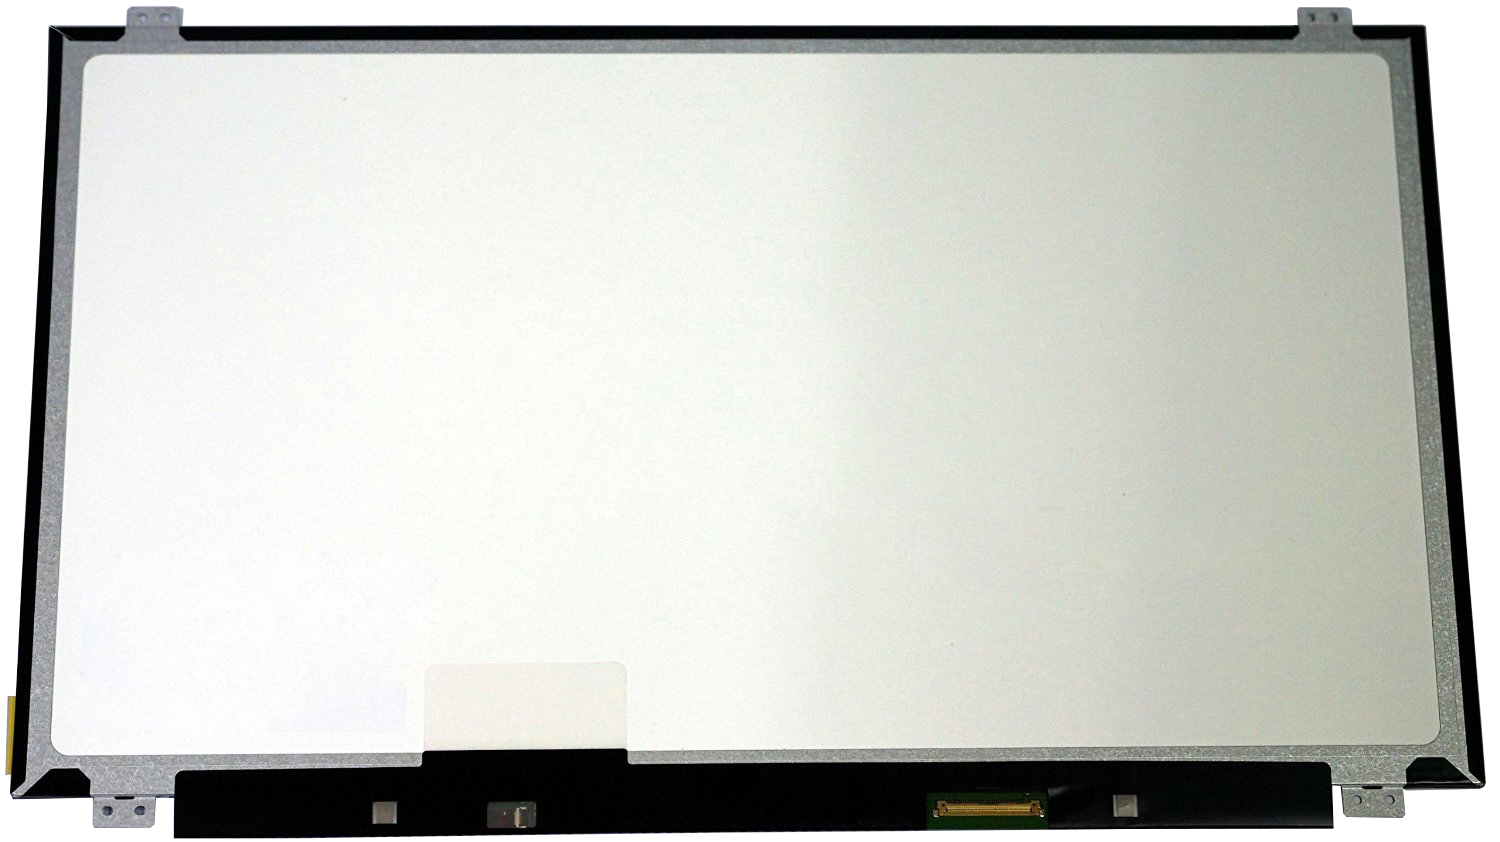 QuYing Laptop LCD Screen for ACER ASPIRE ONE Z1401 V3-472 V3-472G V5-471 V5-471G V3-471 V3-471G V5-431 (14.0 1366x768 40pin) good working original used for power supply board led 42v800 le 42tg2000 le 32b90 vp168ug02 gp power board